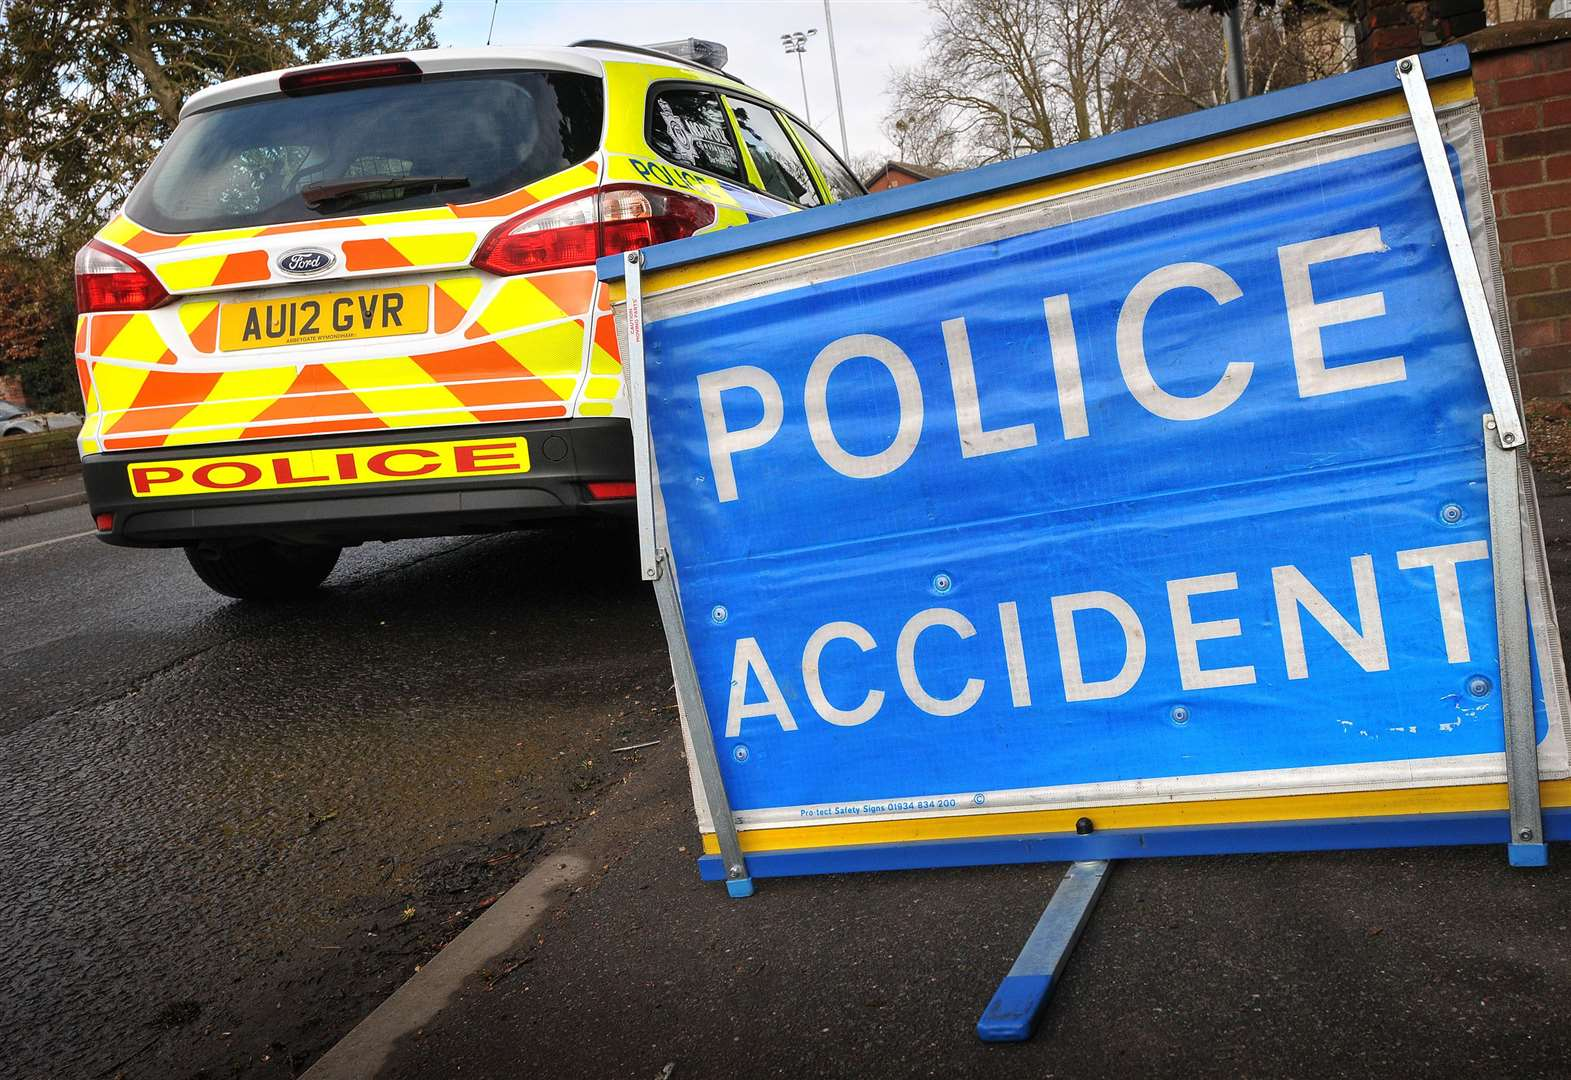 Emergency services called to two car crash